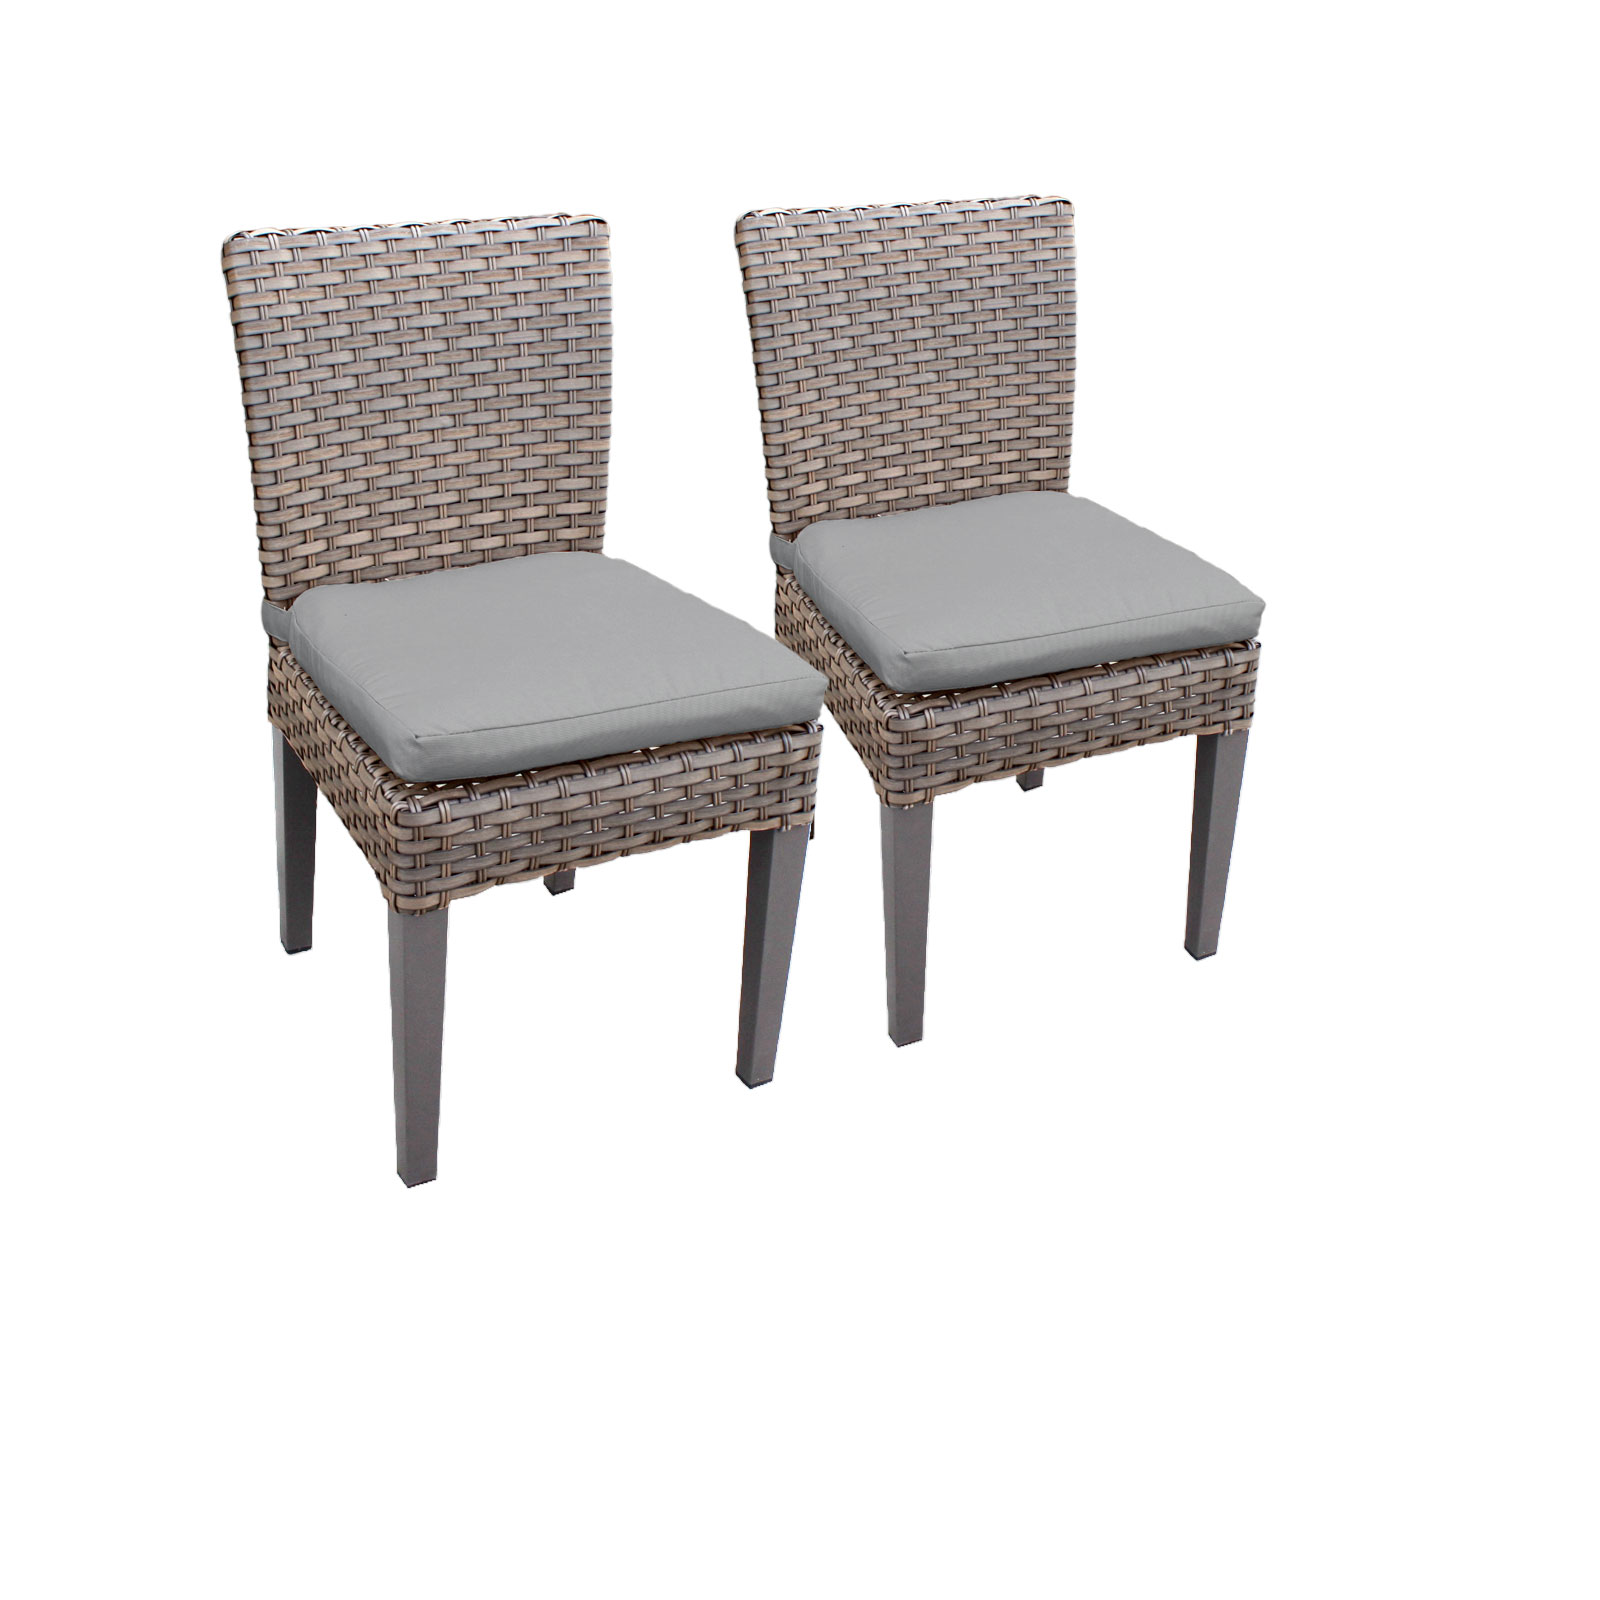 Harmony Rectangular Outdoor Patio Dining Table With 8 Chairs by TK Classics